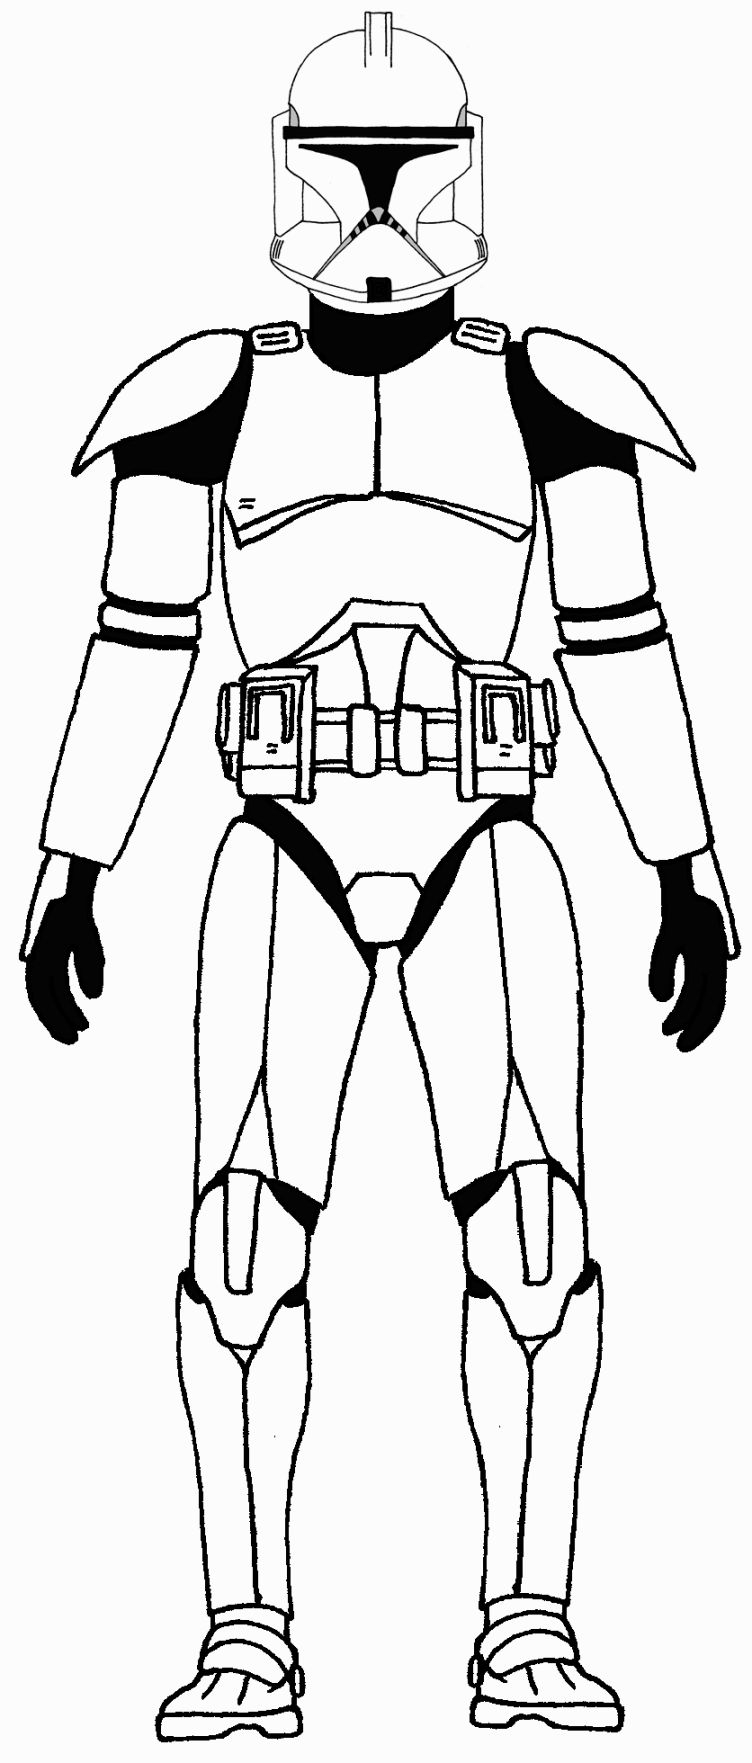 Star Wars Clone Coloring Pages Star Wars The Clone Wars Coloring Pages Coloring Pages